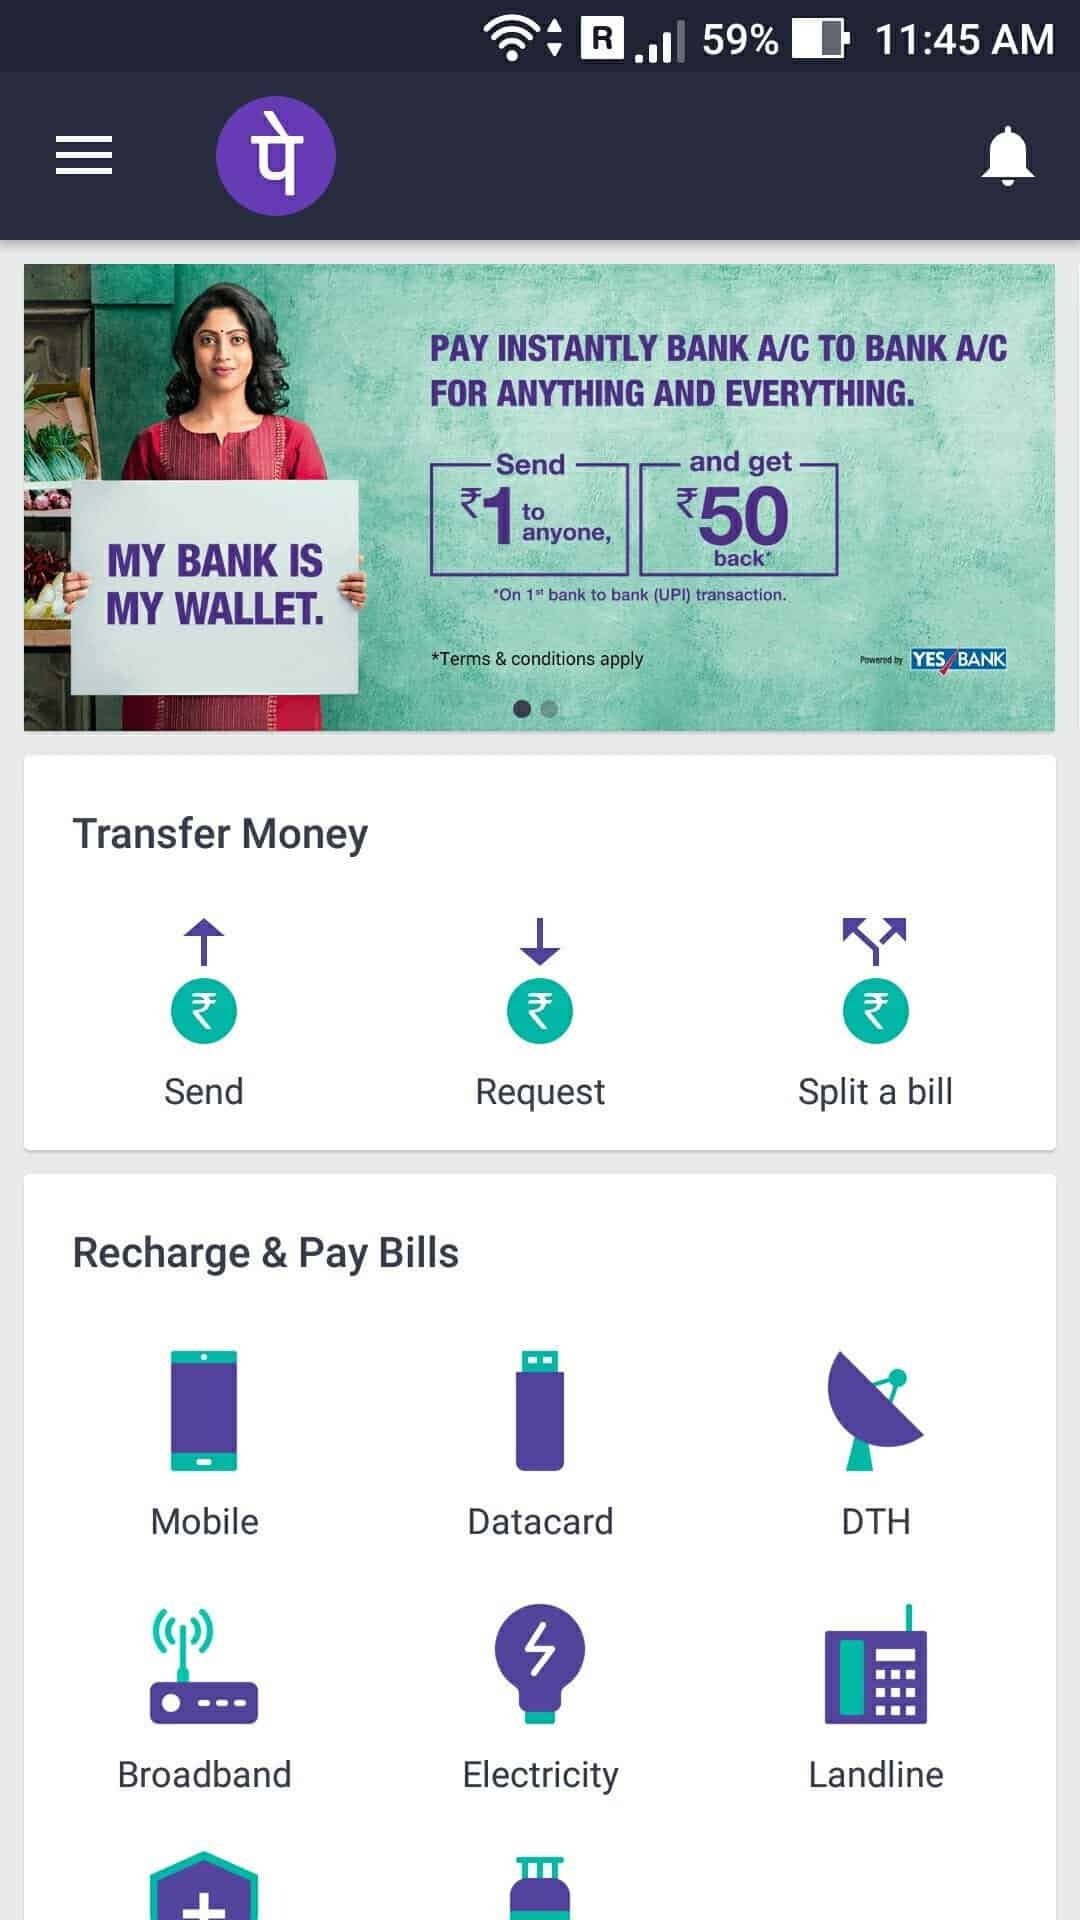 PhonePe - India's Digital Payment App Review - 2